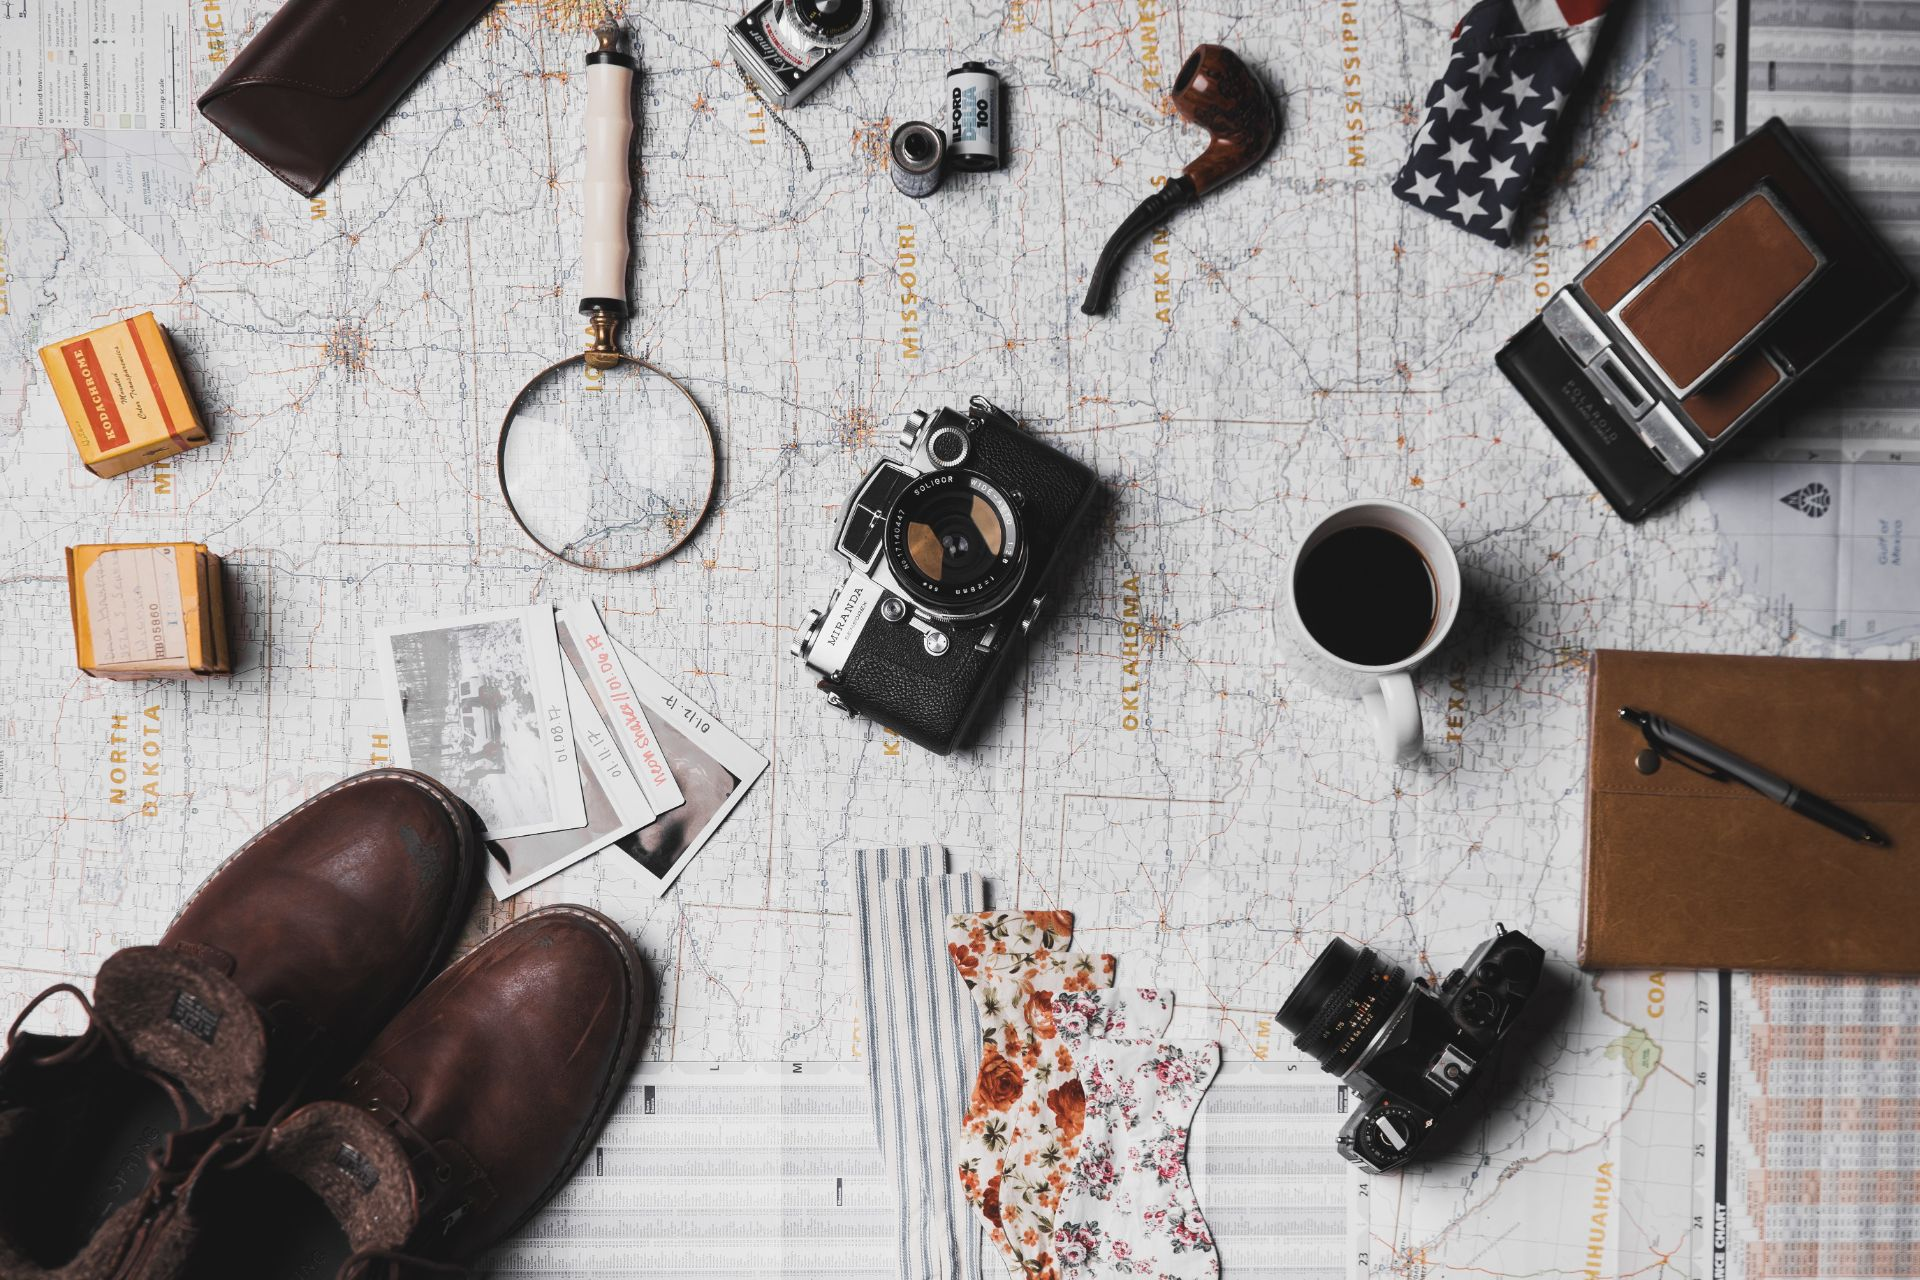 travel-planning-items-on-map-magnifying-glass-camera-notebook-boots